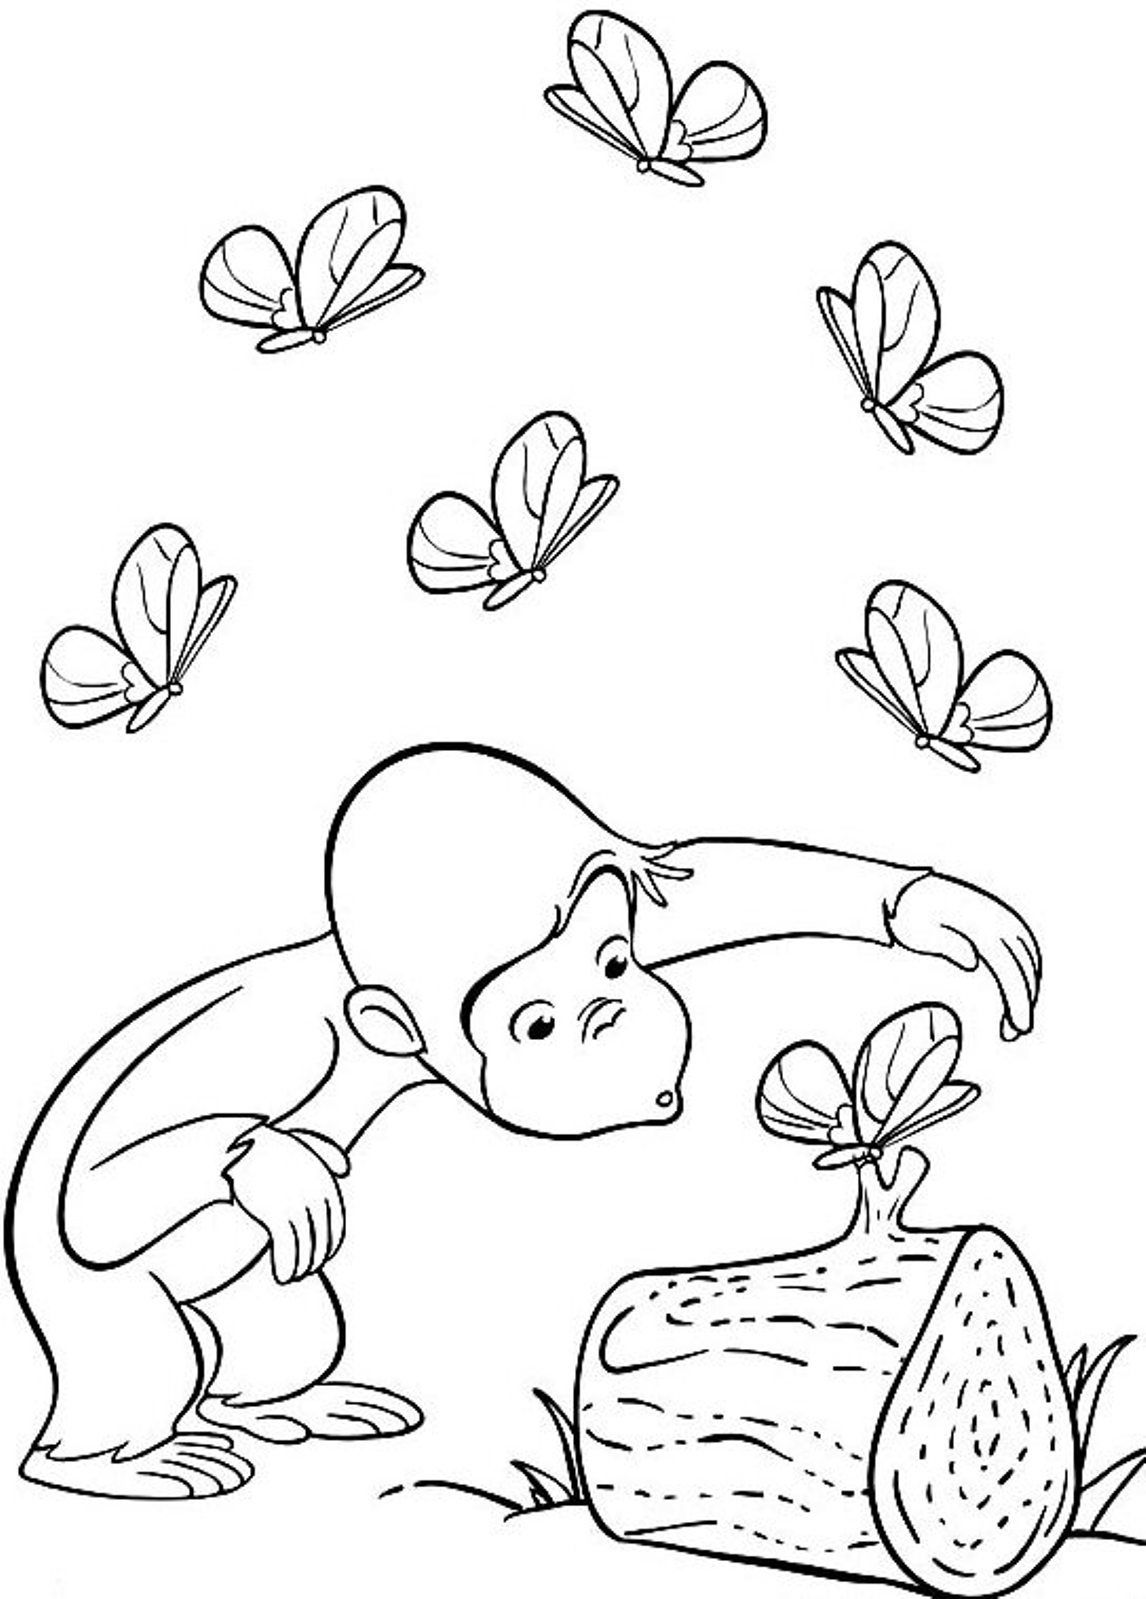 Coloring book curious george - Cartoon Coloring Butterflies And Curious George Coloring Pages Butterflies And Curious George Coloring Pagesfull